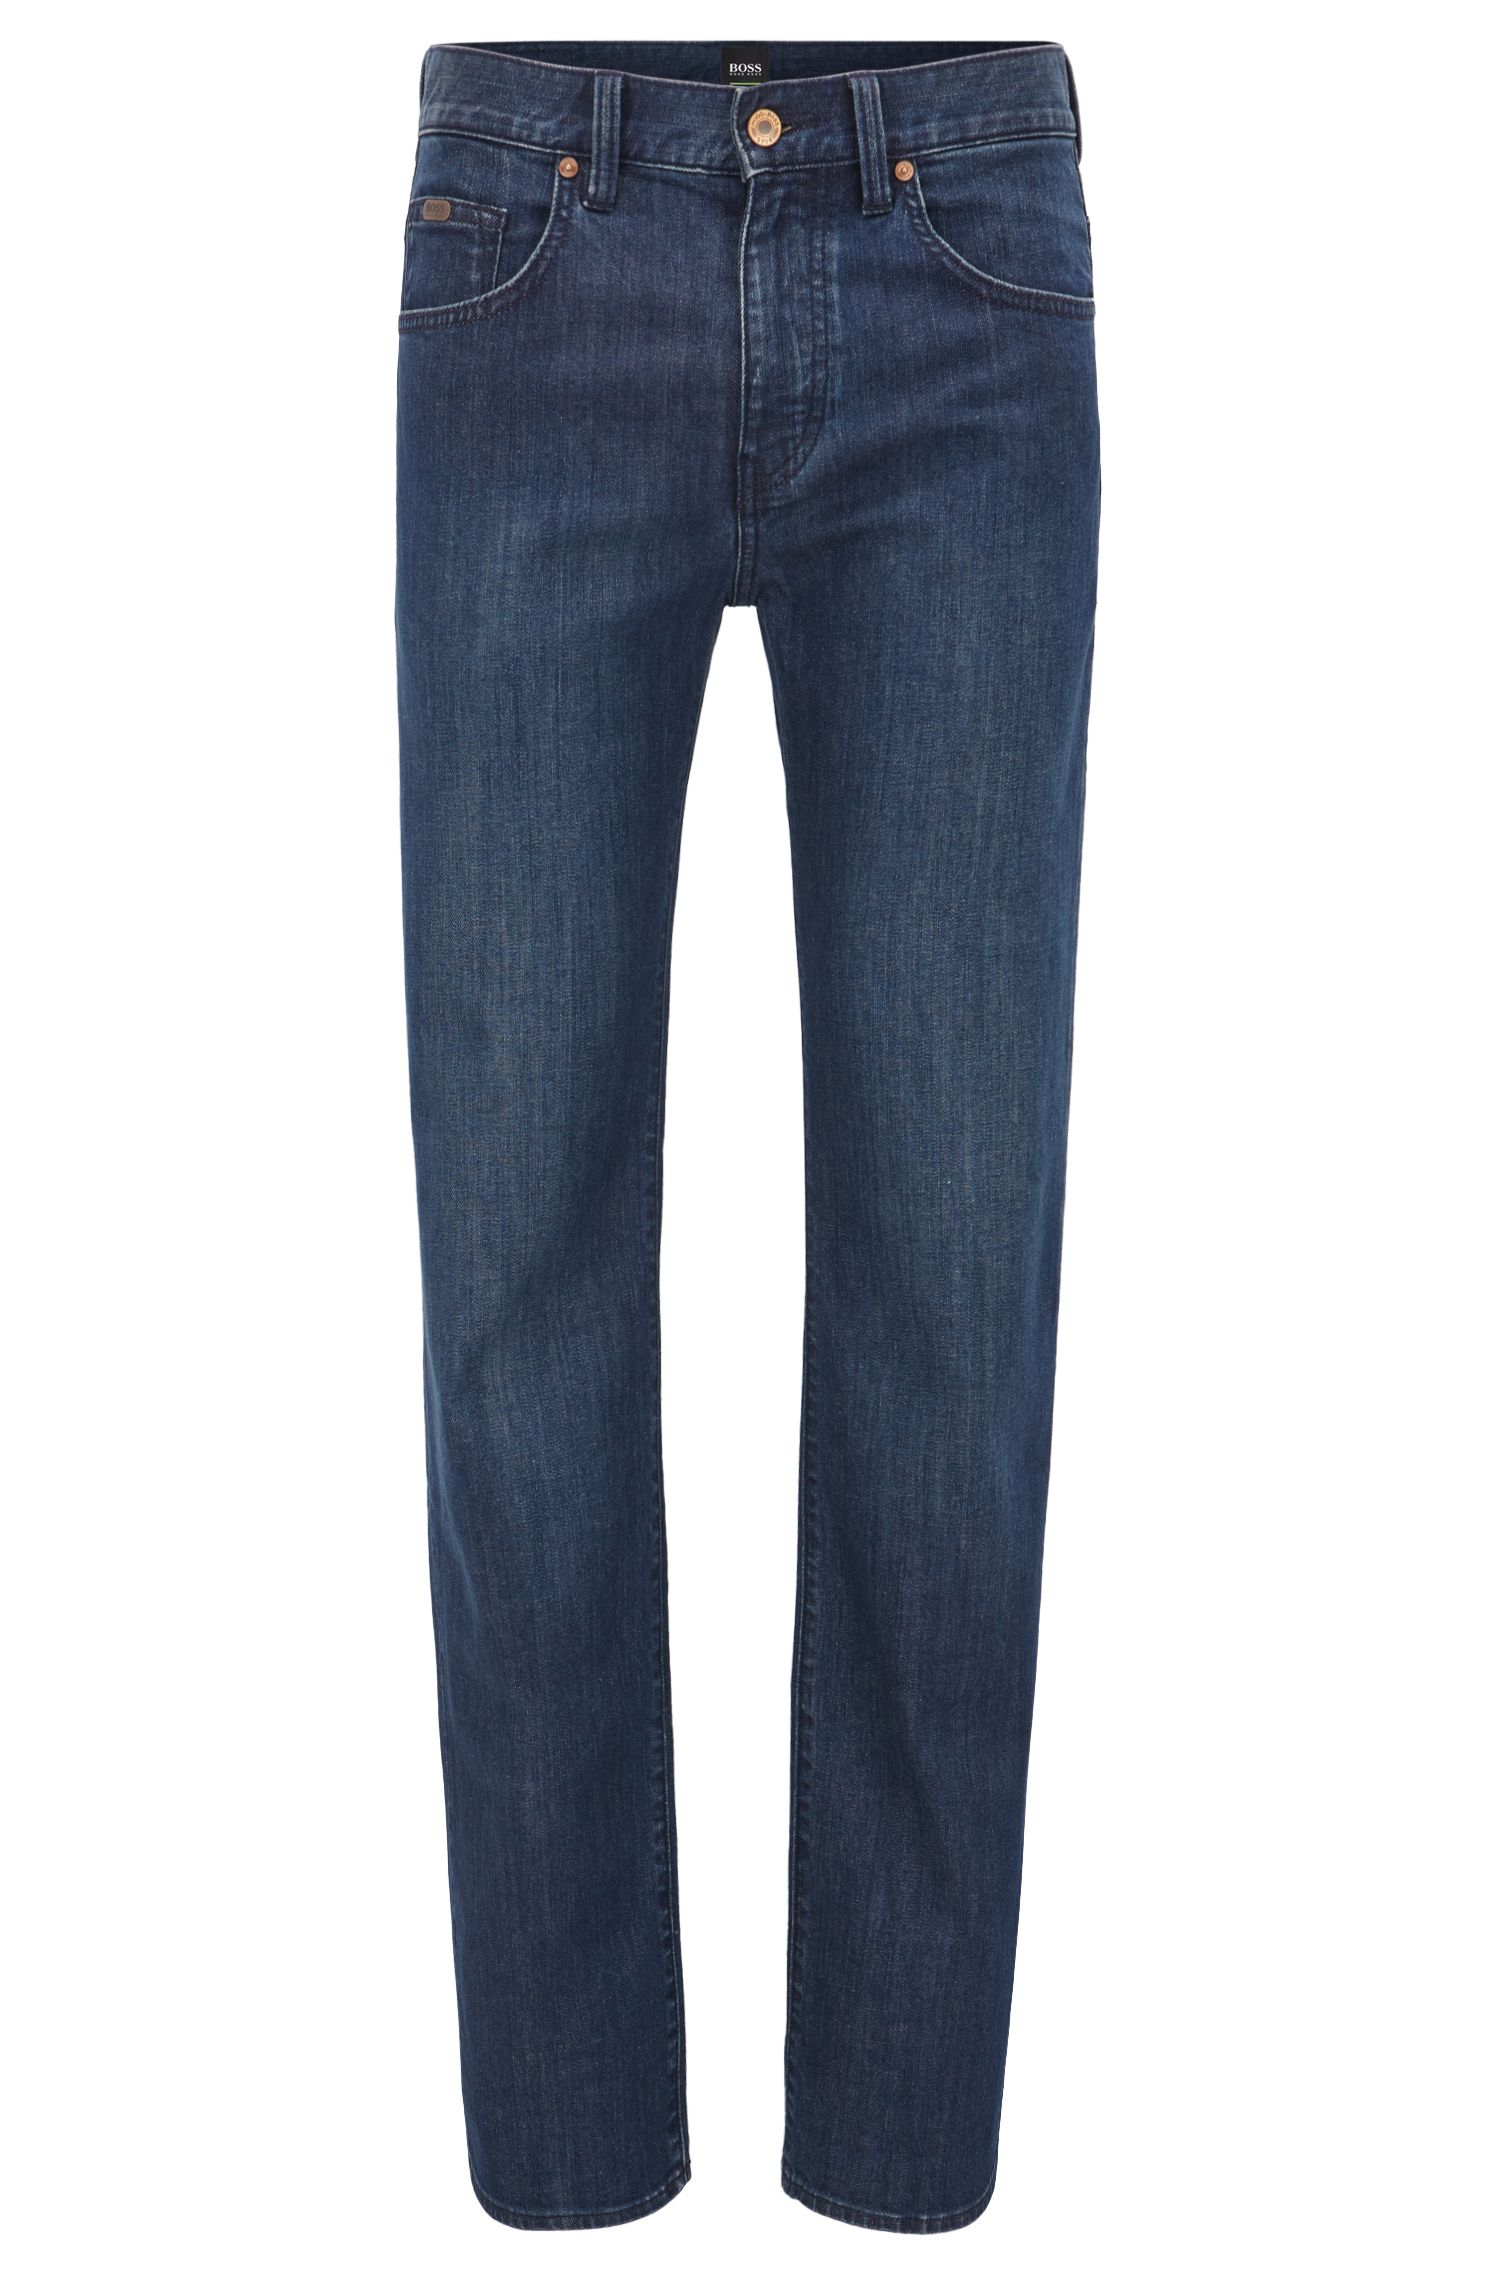 Relaxed fit stretch denim jeans with straight leg